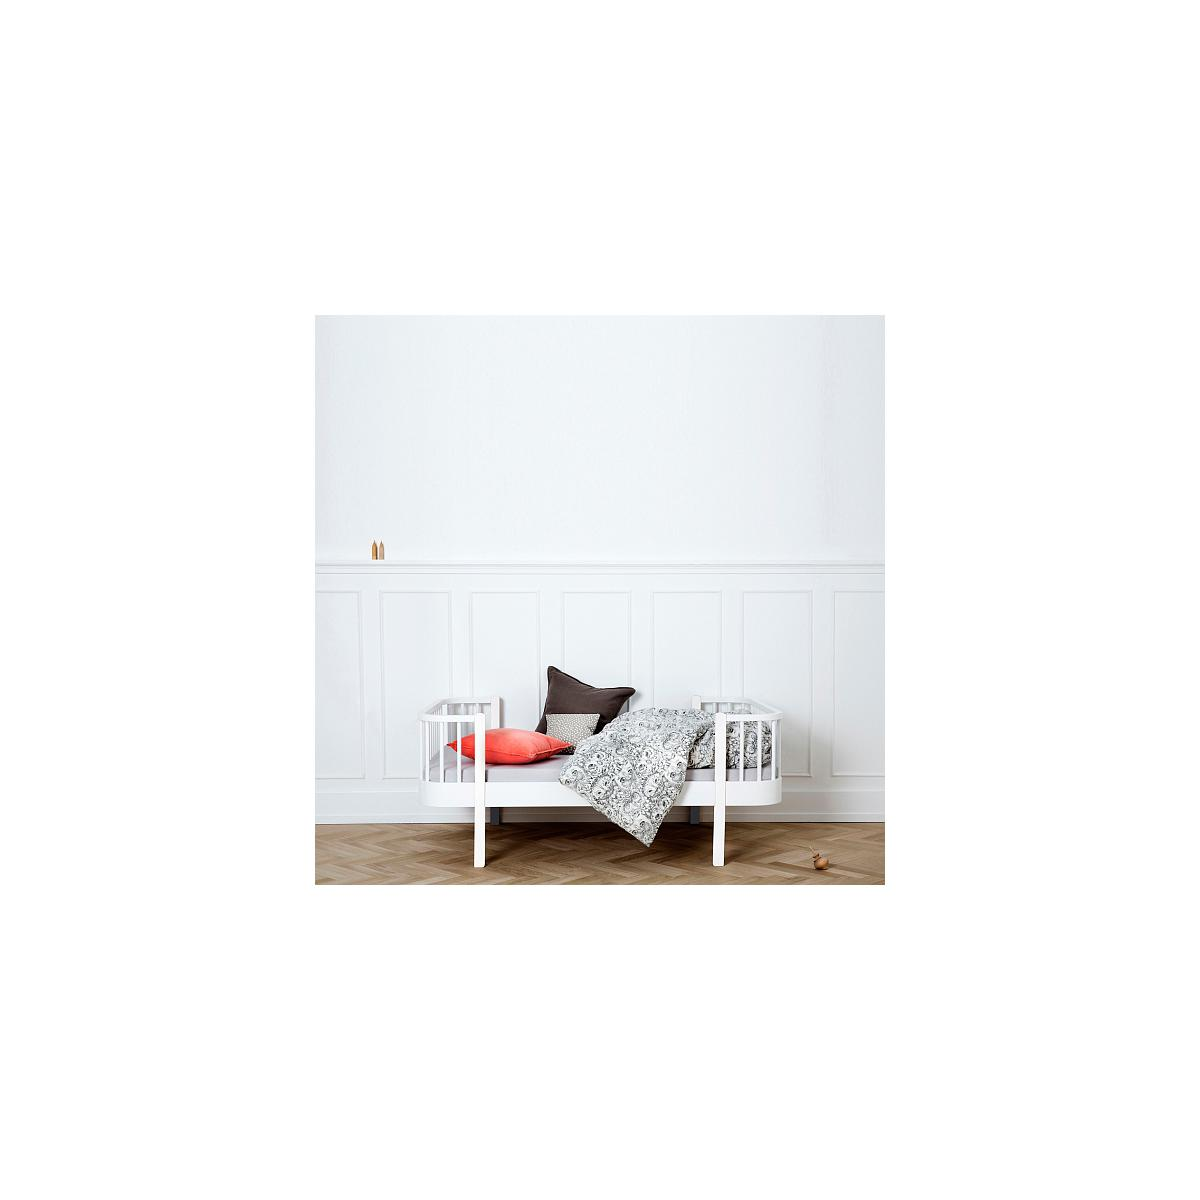 Lit bas évolutif 90x160cm WOOD ORIGINAL Oliver Furniture blanc